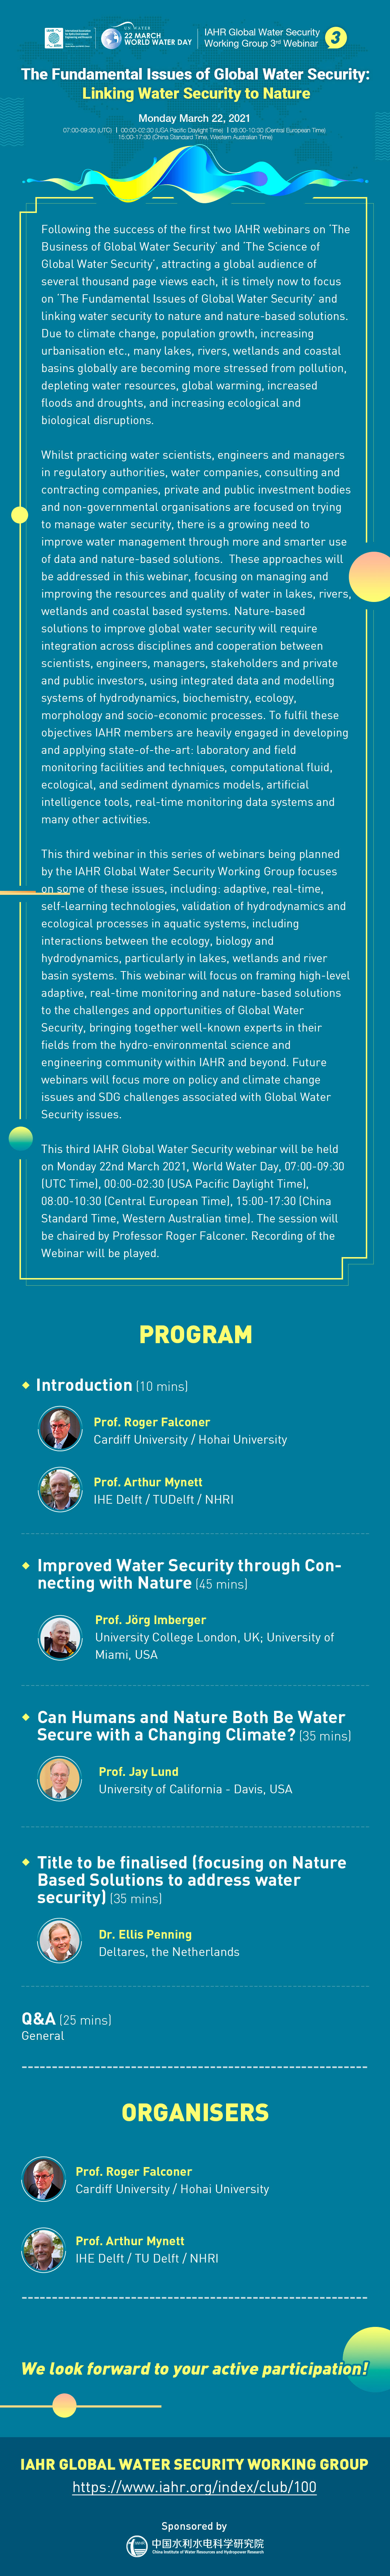 The-Business-of-Global-Water-Security--Linking-Knowledge-to-Practice-详情-简化2.jpg